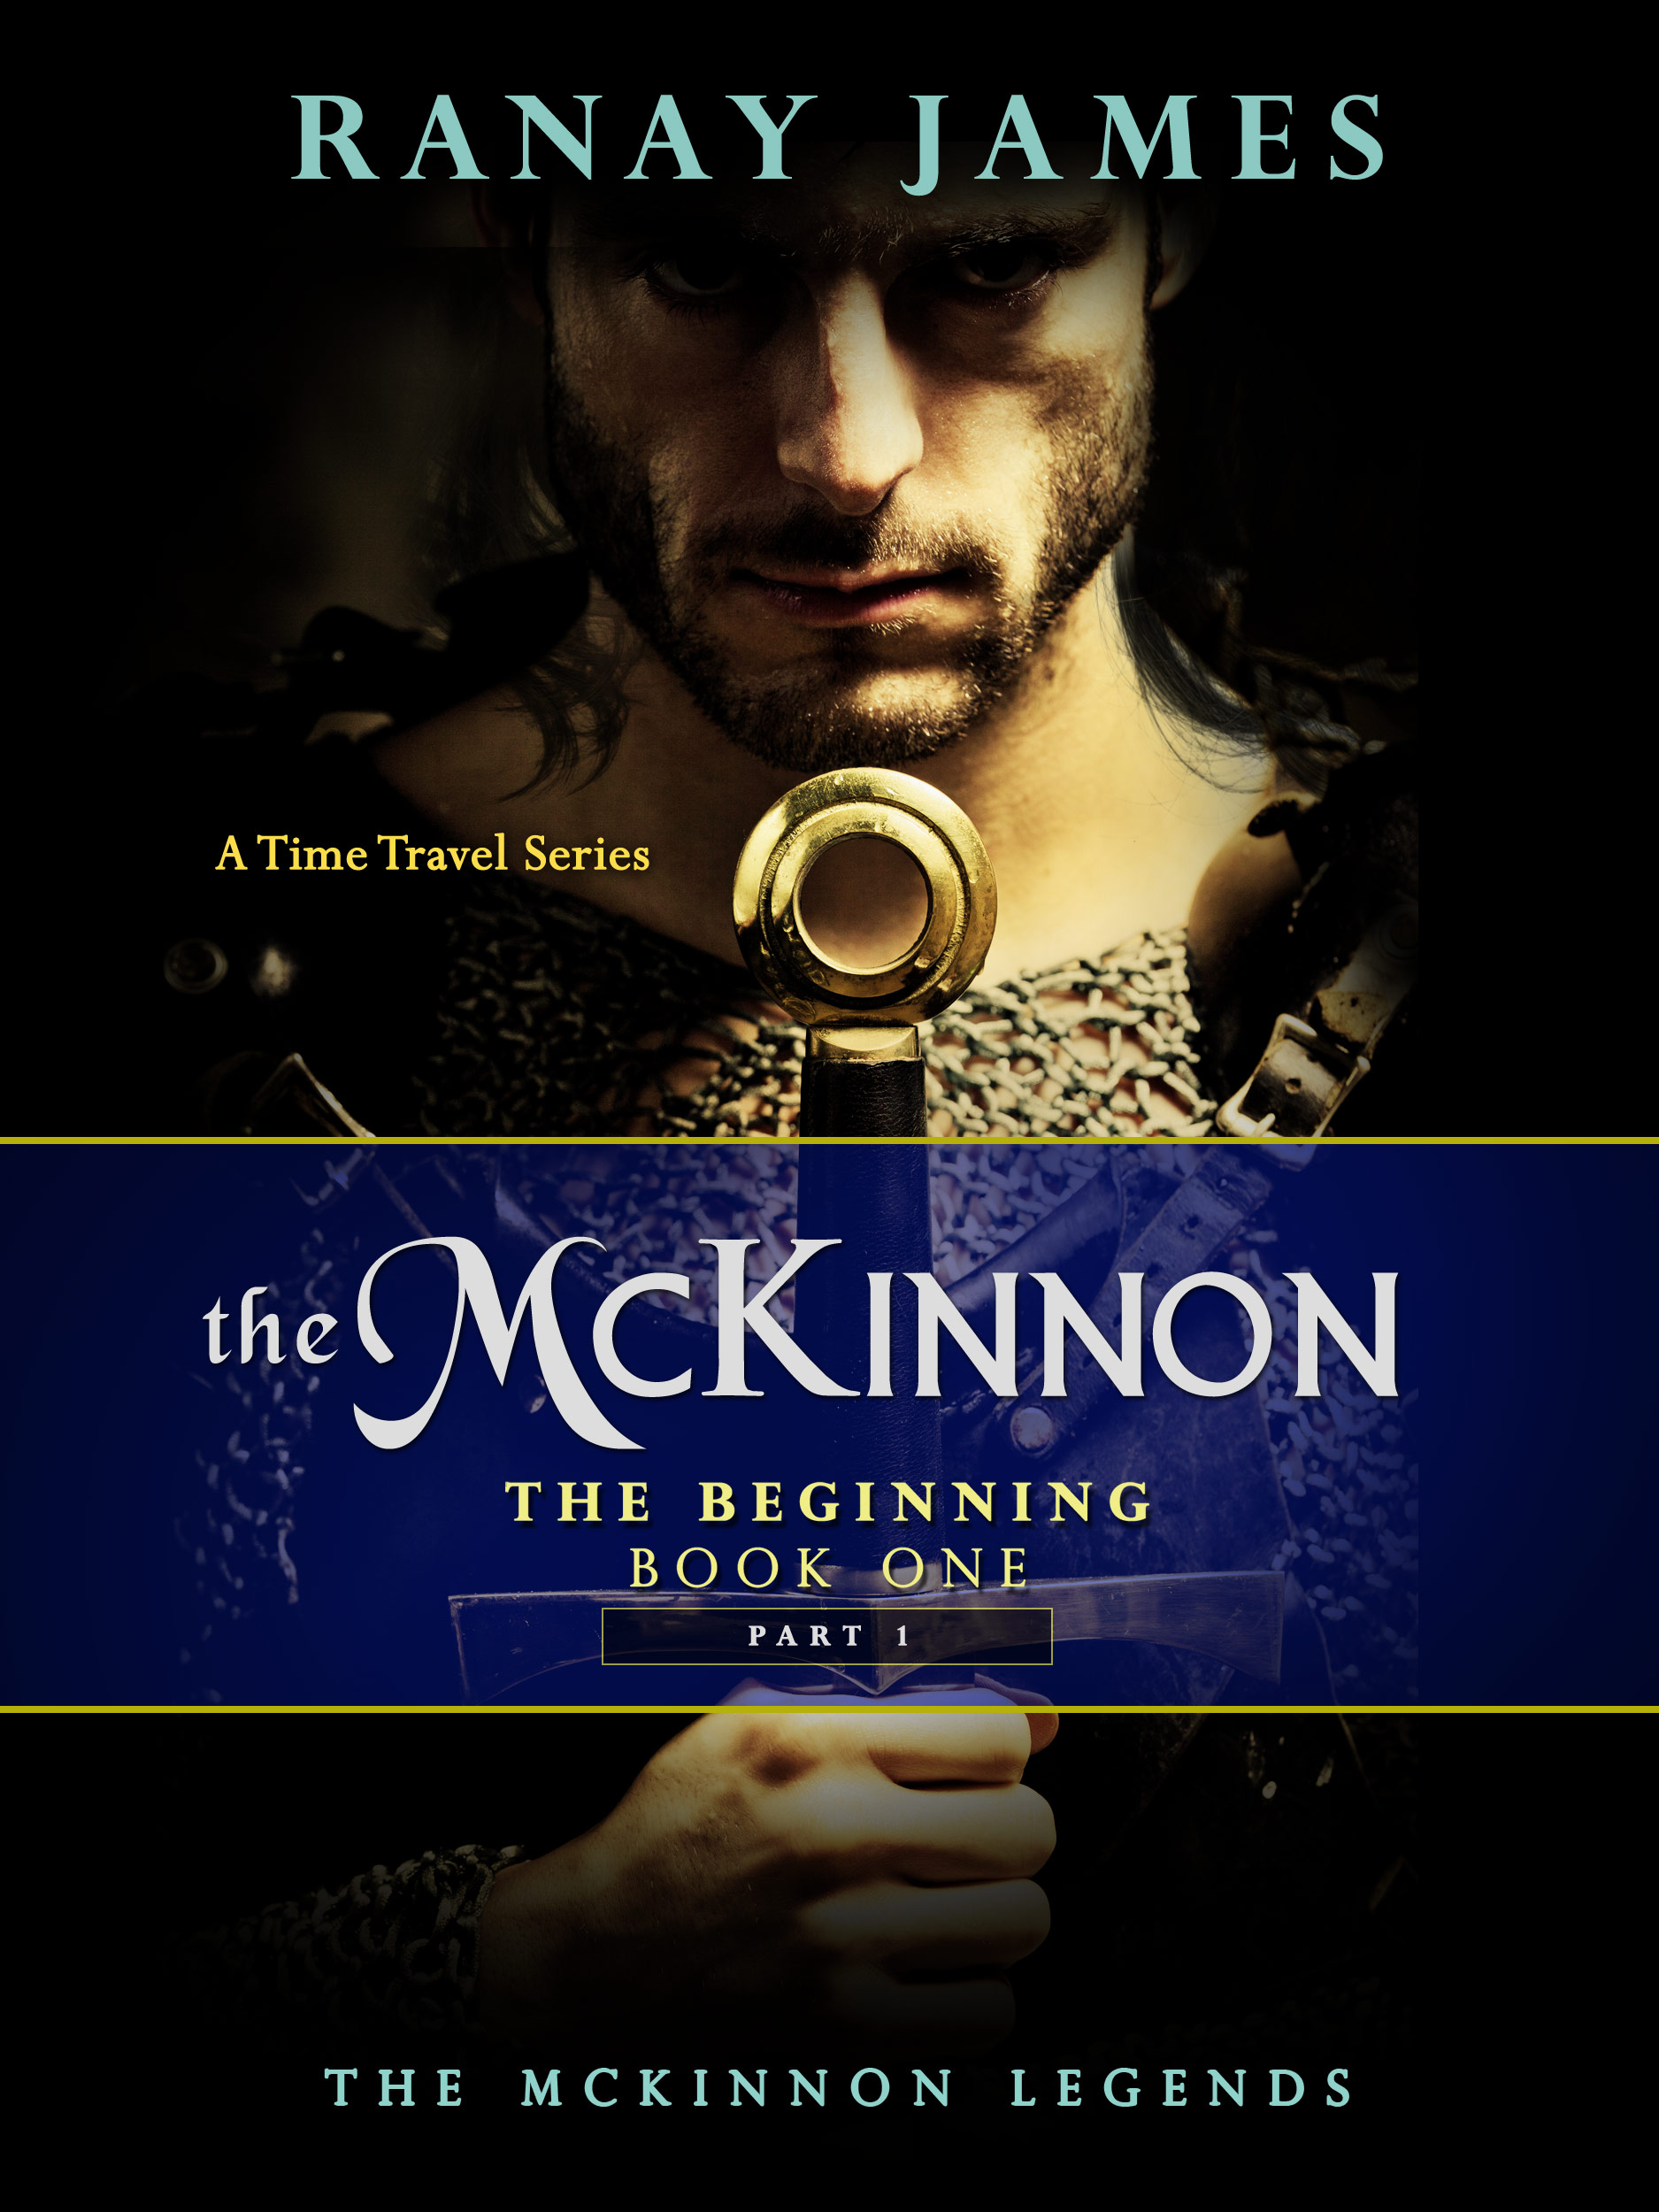 The McKinnon The Beginning: Book 1 – Part 1 The McKinnon Legends (A Time Travel Series)